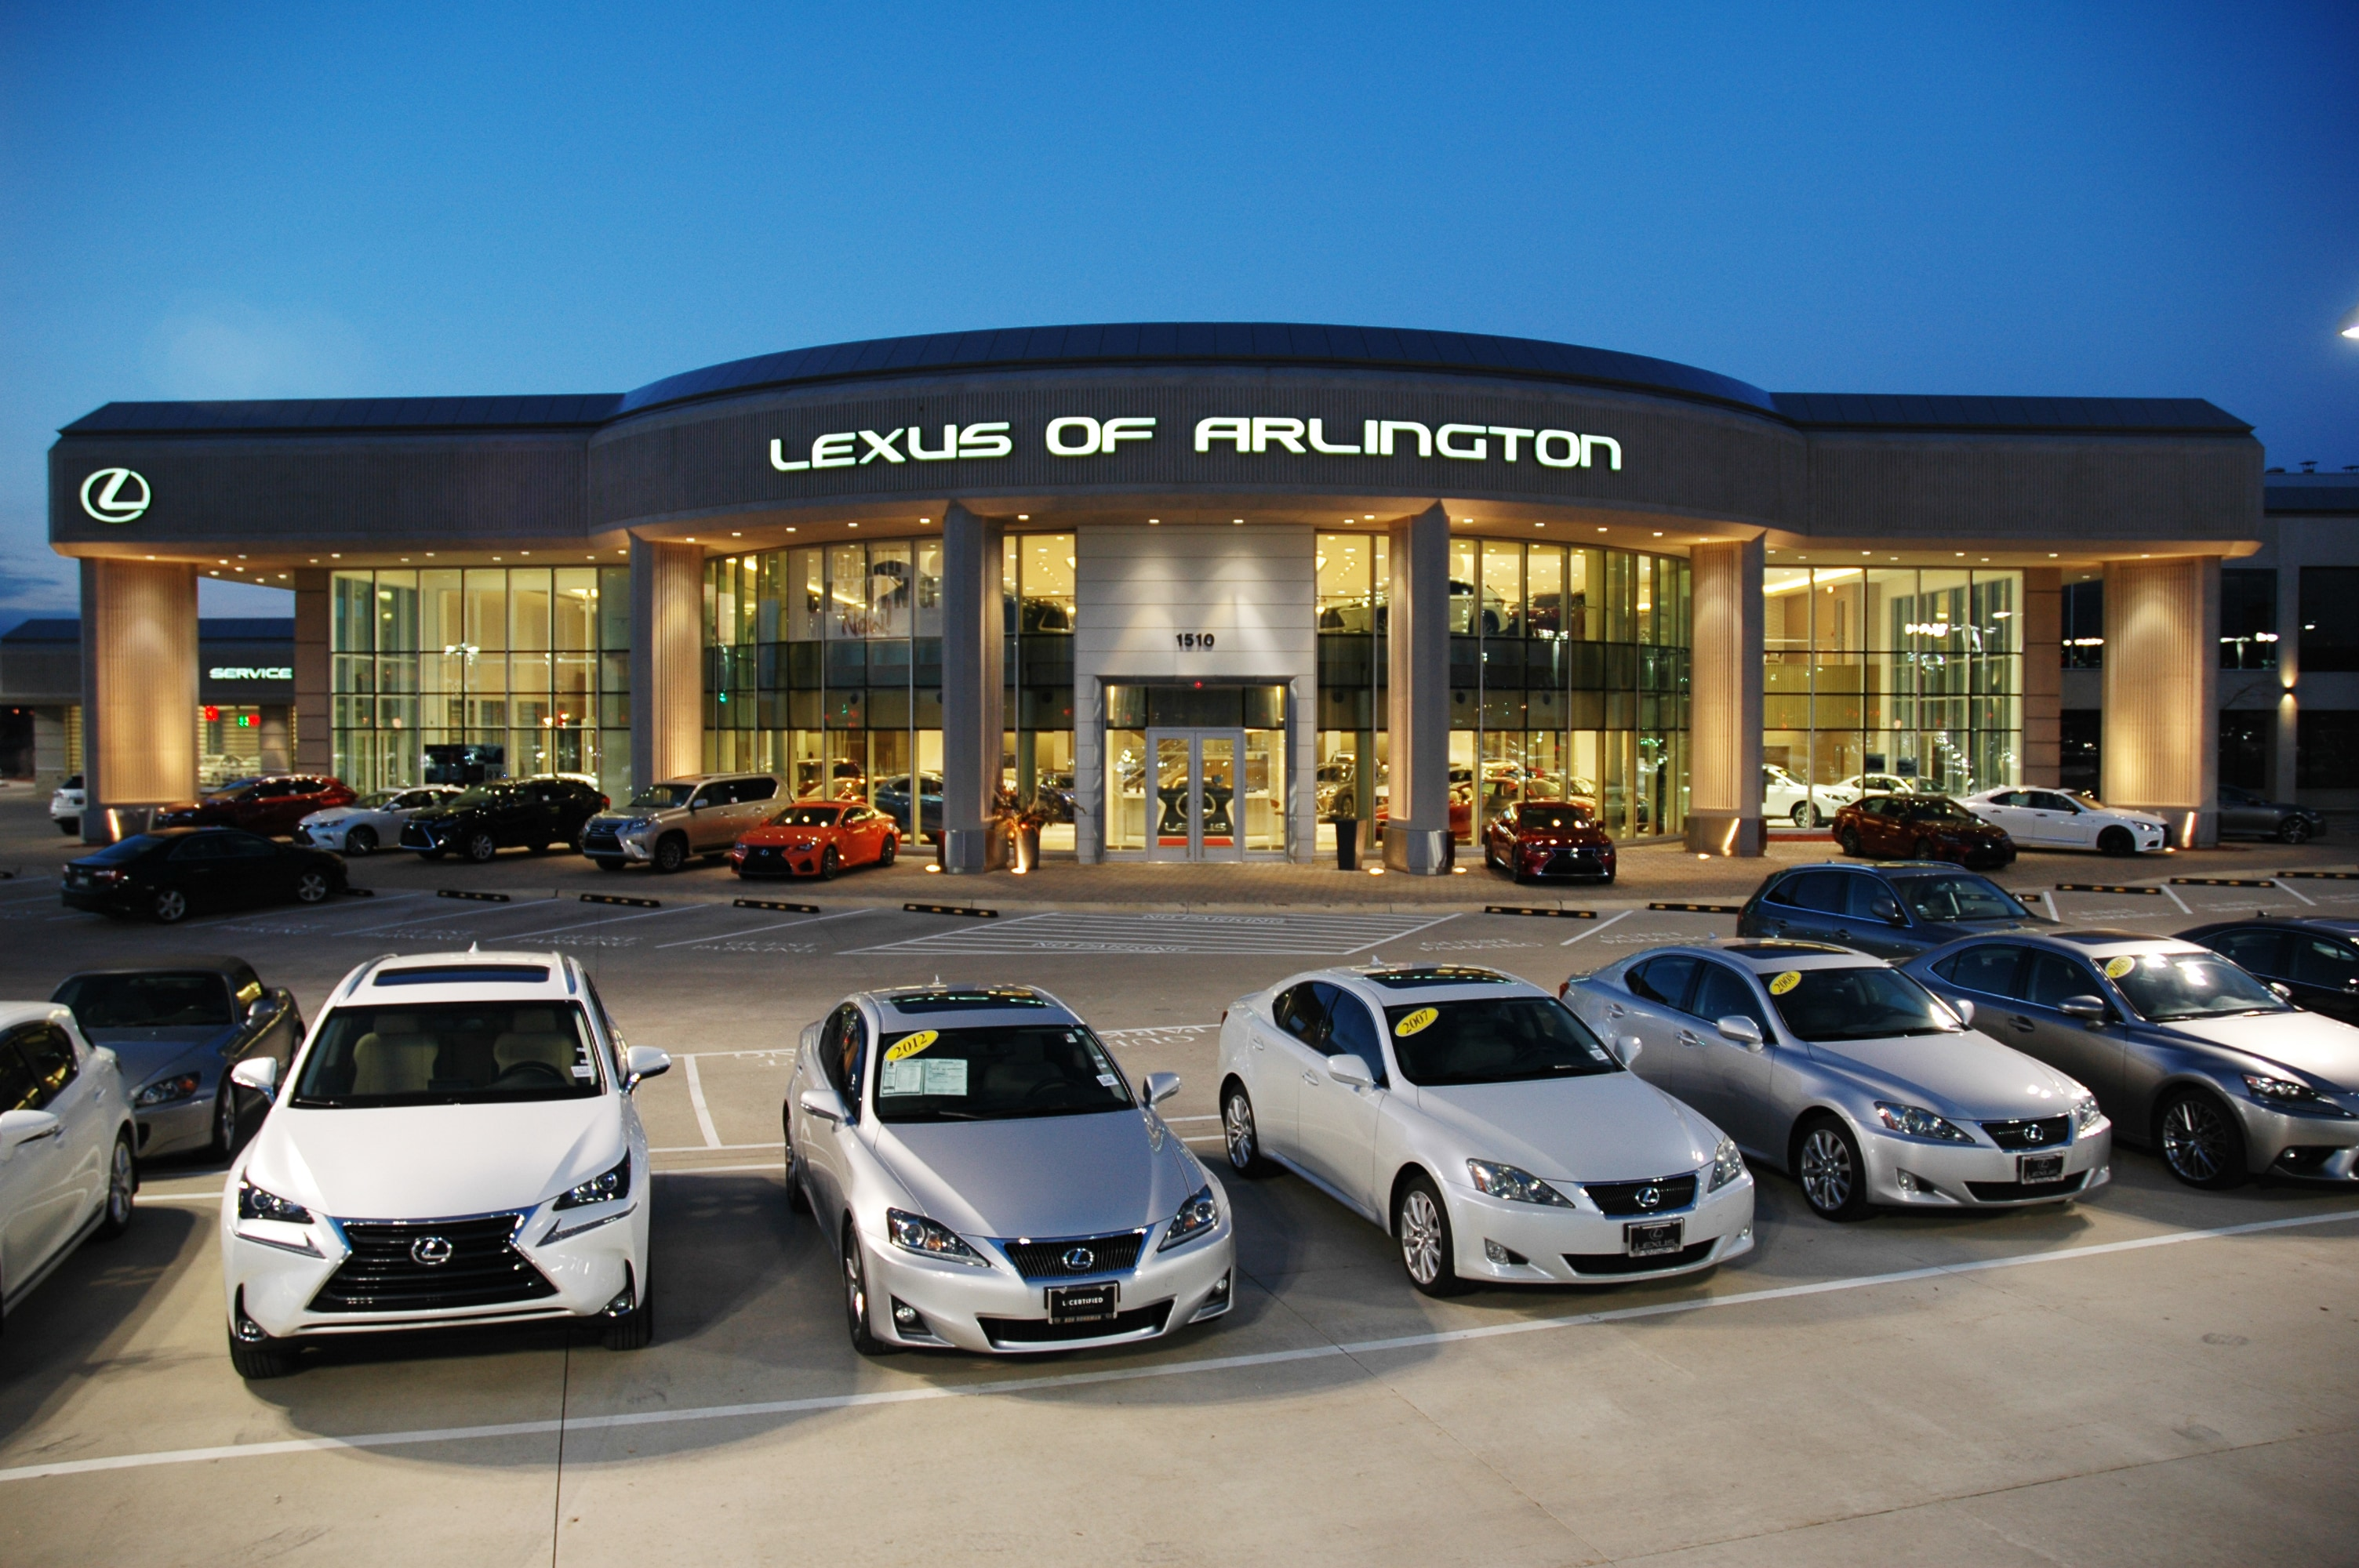 Lexus Car Dealership U003eu003e Lexus Of Arlington: New And Used Lexus Dealership  In Arlington